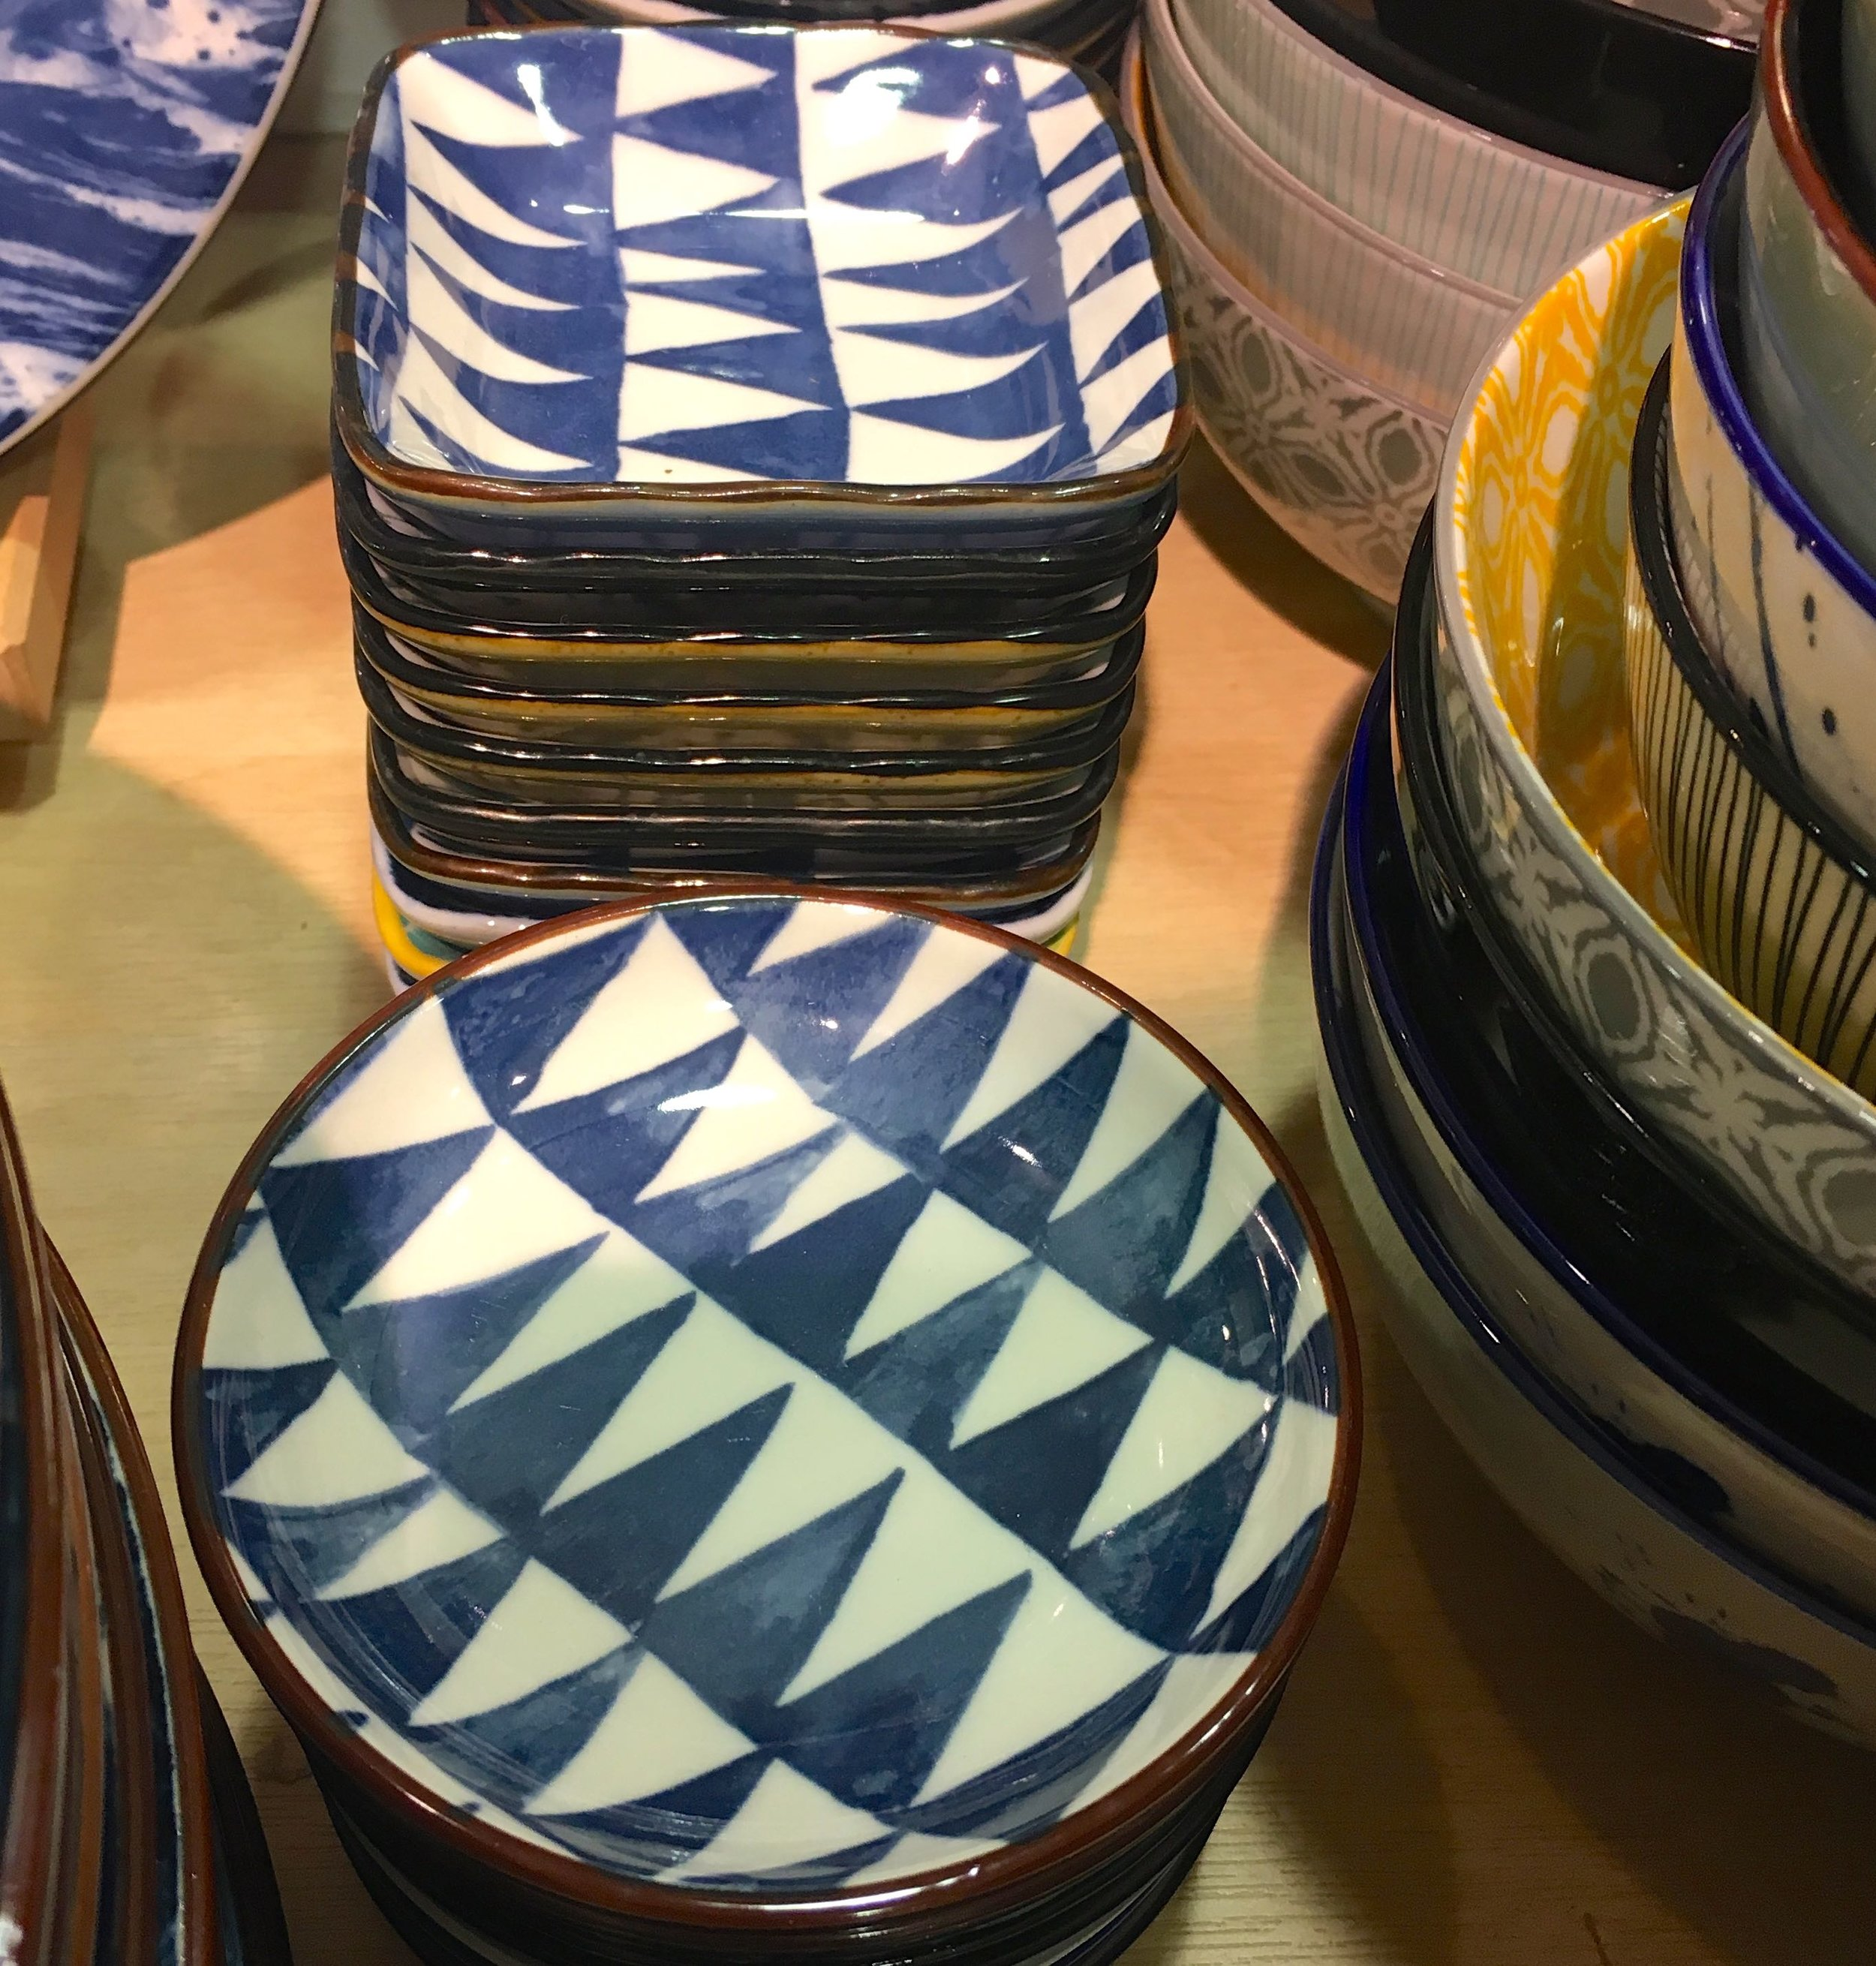 crockery with bold geometric patterns